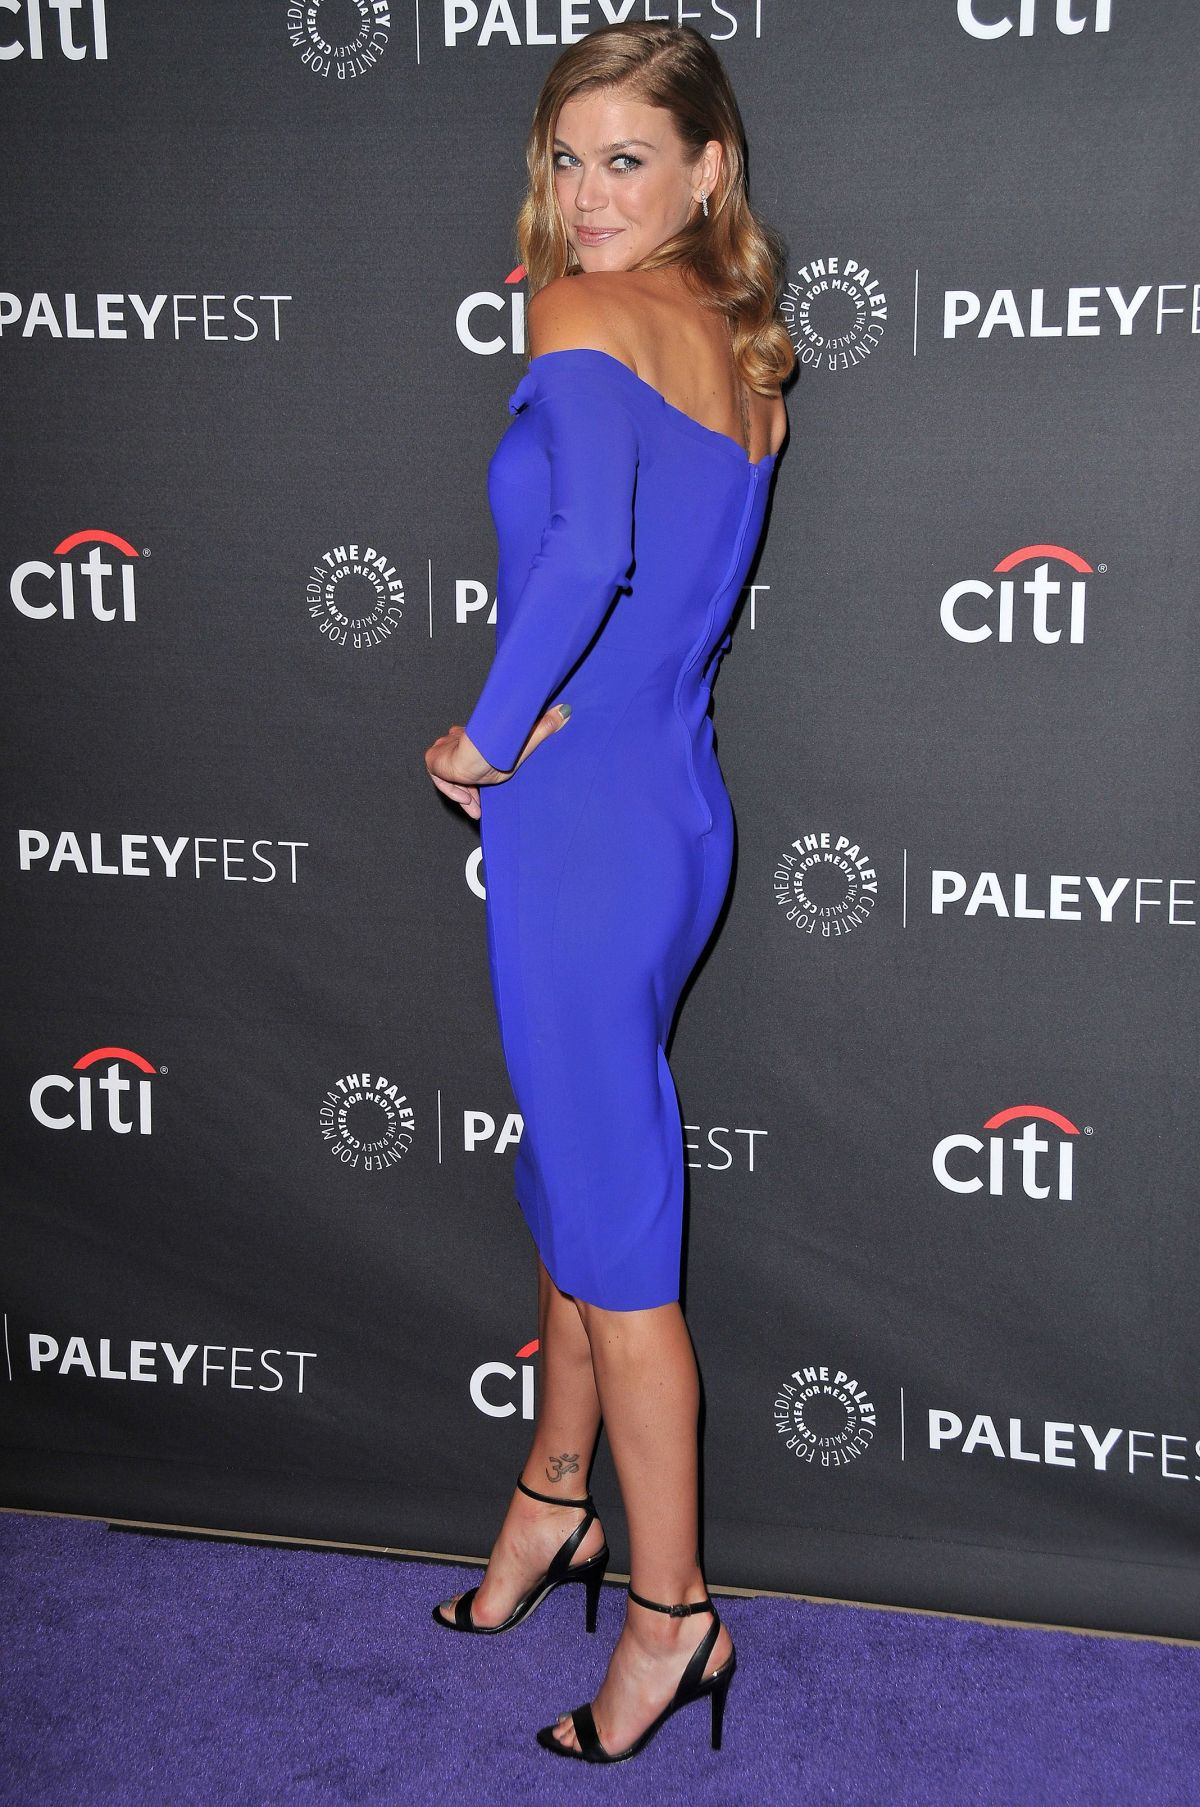 ADRIANNE PALICKI at 11th Annual Paleyfest The Orville Event in Beverly Hills 09/13/17